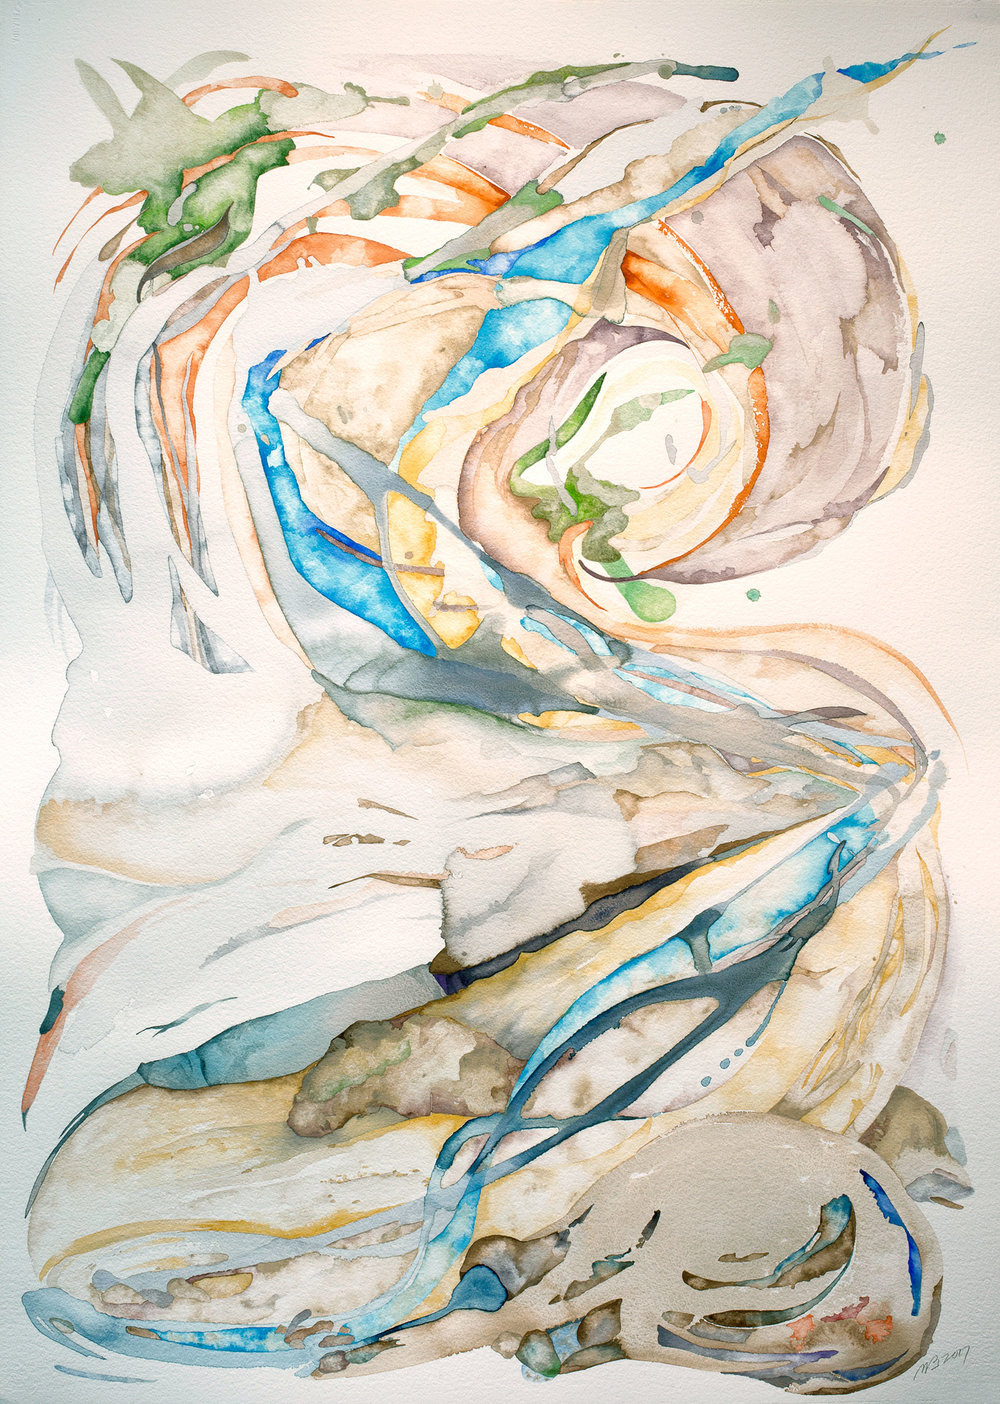 Braided Bed , 2017, watercolor on Italian watercolor paper, 41 x 29.5 in.